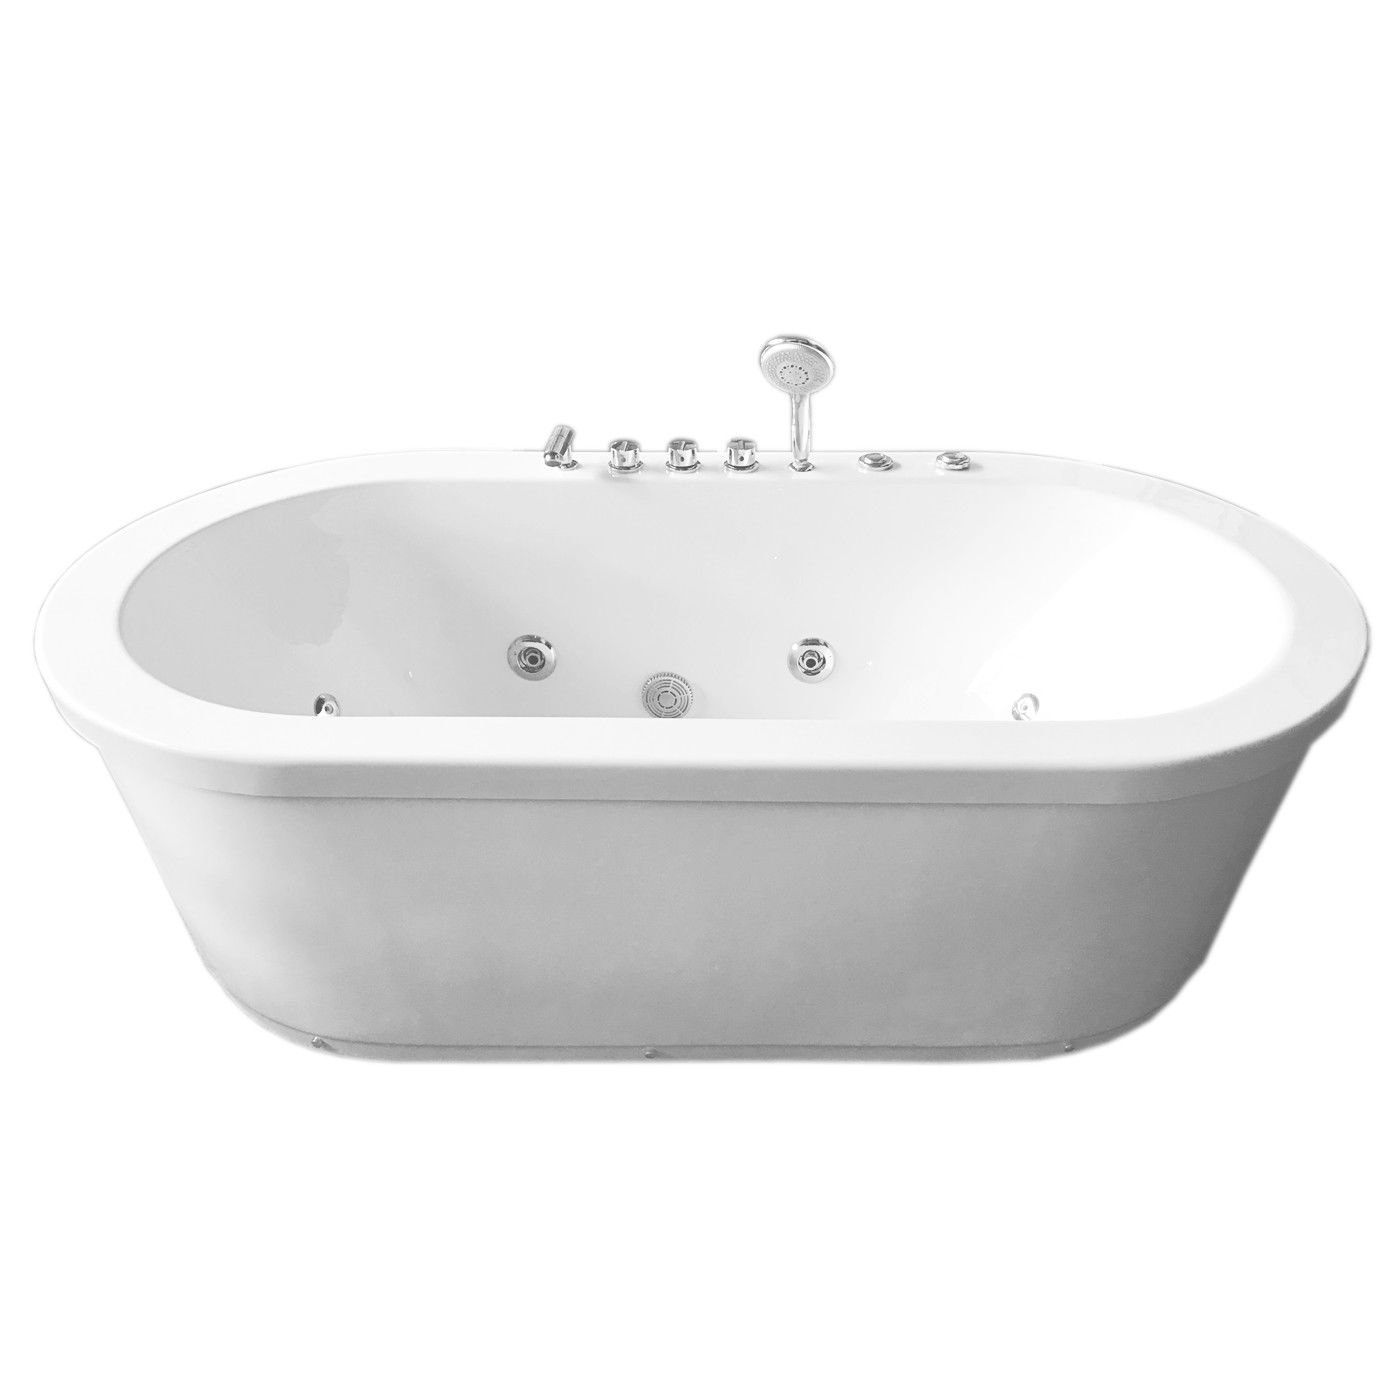 MCP Jetted Tubs Freestanding Hydrotherapy Bathtub_3